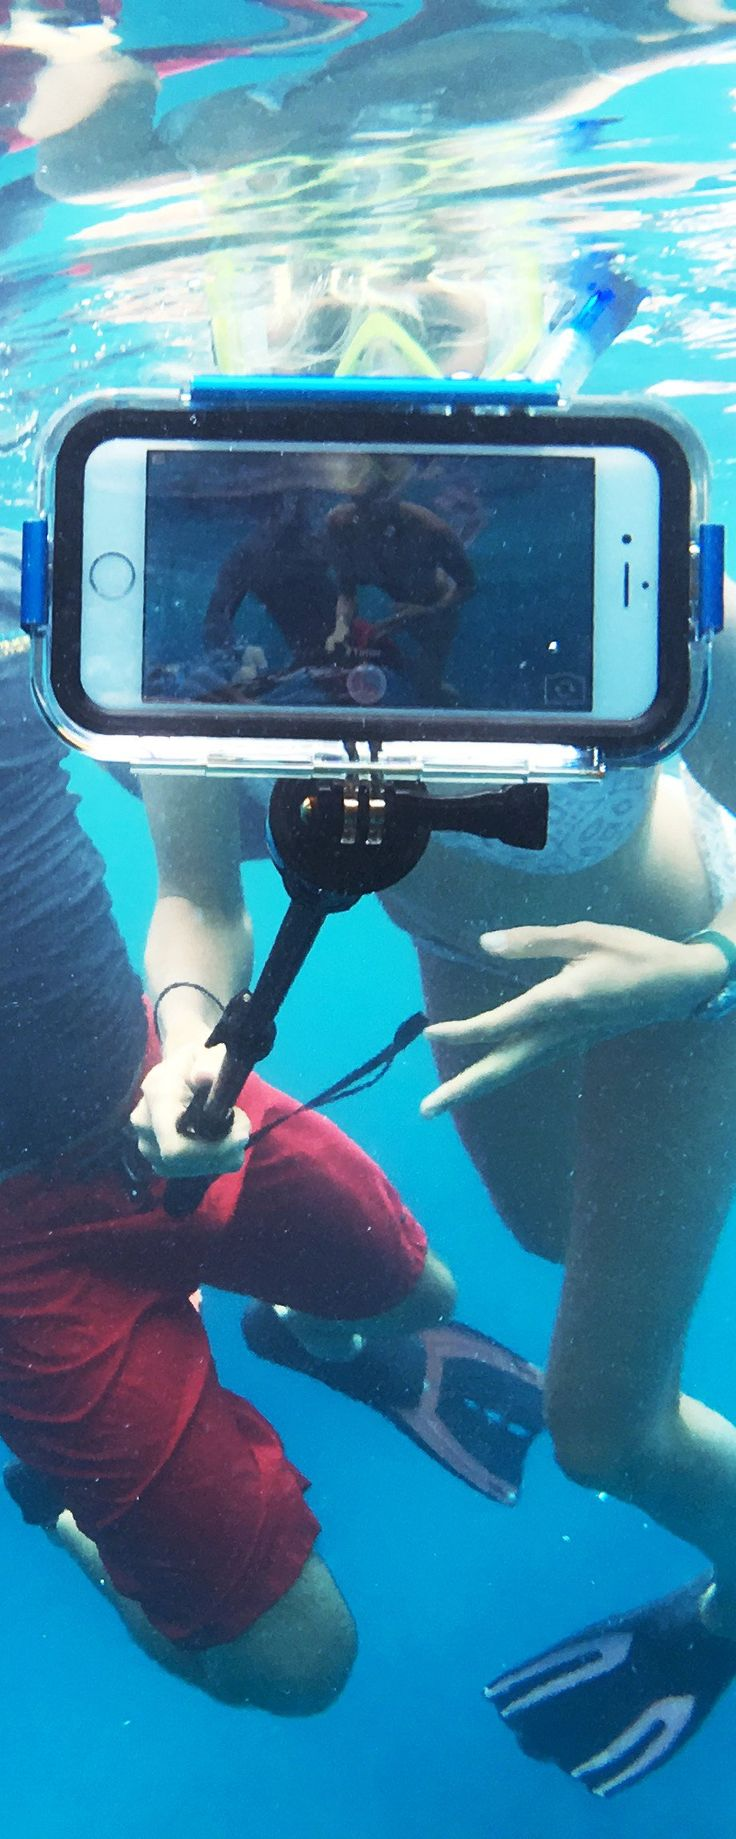 From a mountaintop to a deep-sea dive, these cases let you that capture the memories—without compromising your iPhone's safety. Discovered by The Grommet